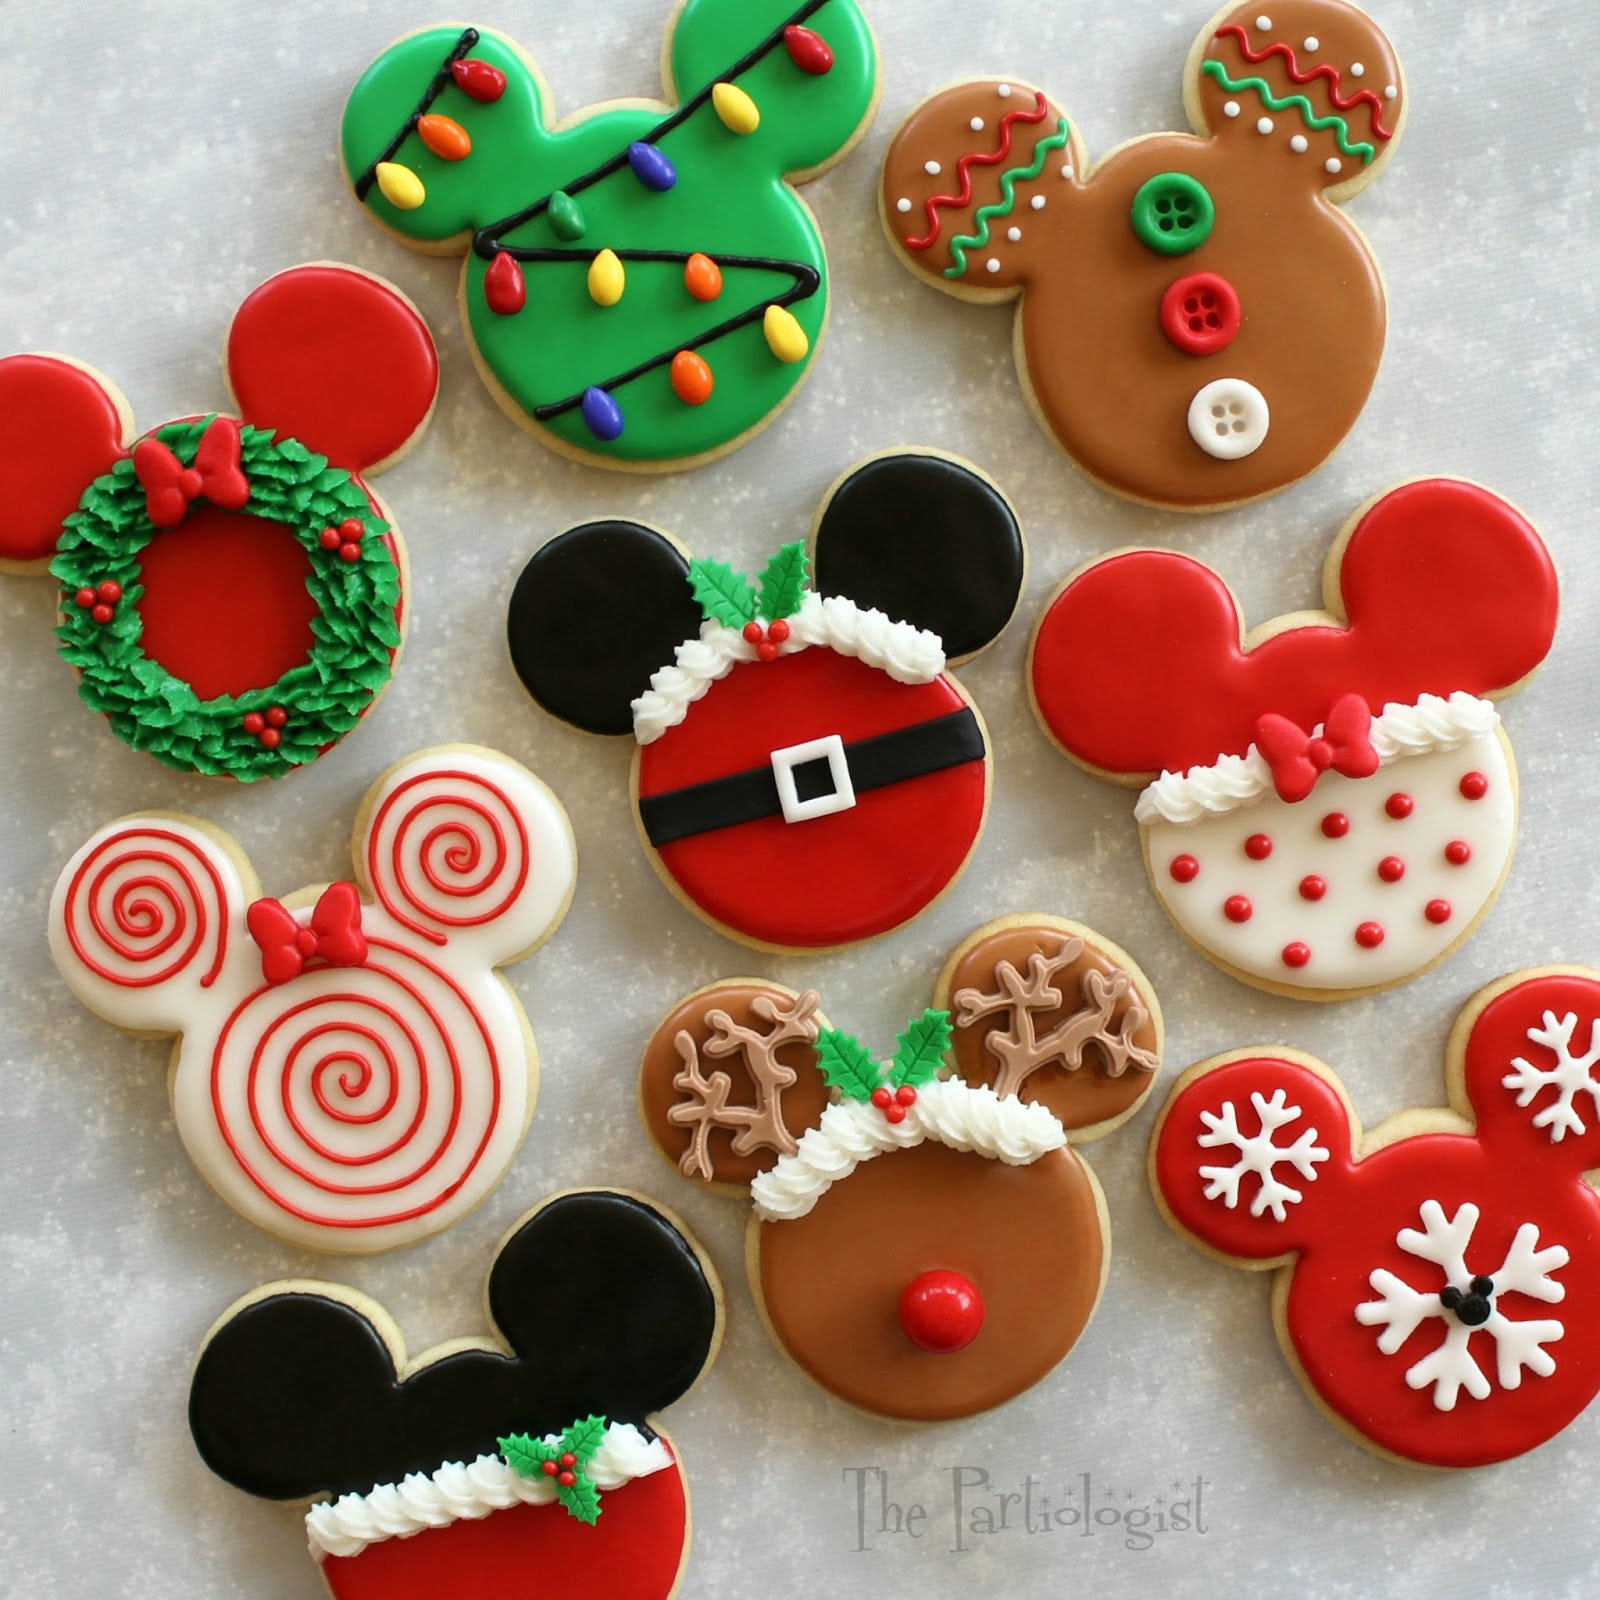 The Partiologist: Disney Themed Christmas Cookies